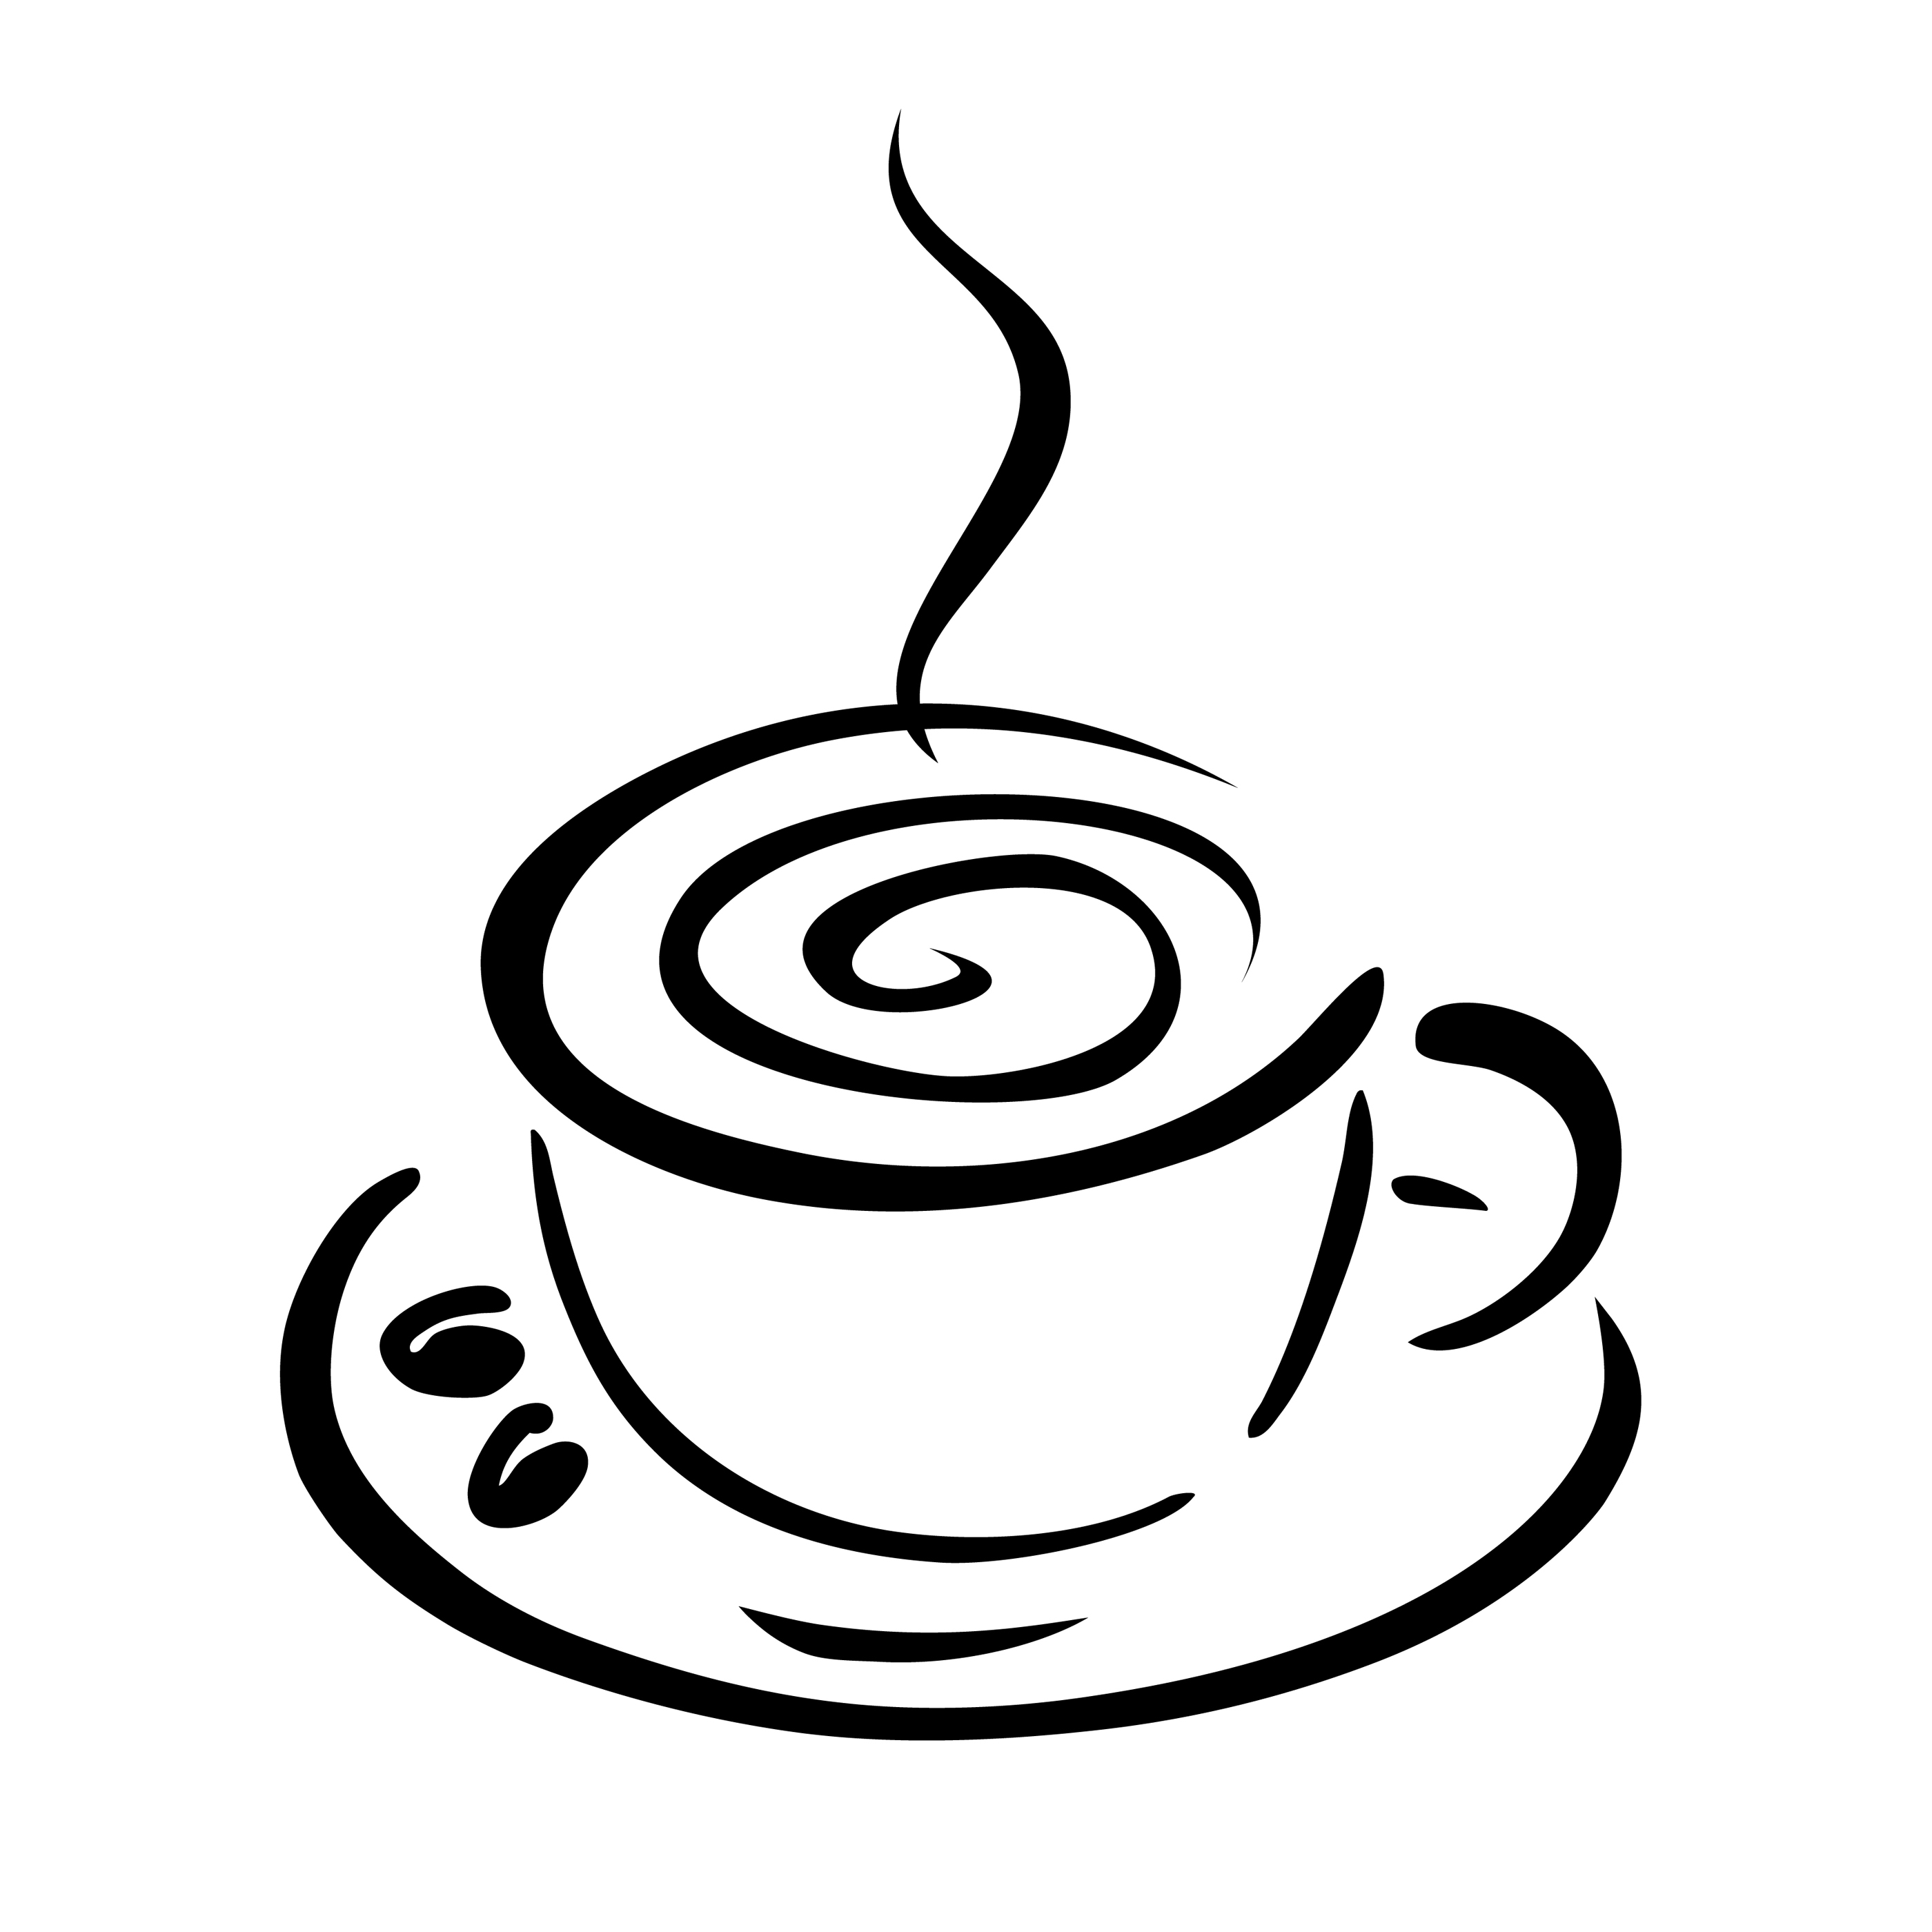 2800x2800 Coffee Cup Clip Art Black White Free Clipart Images 2